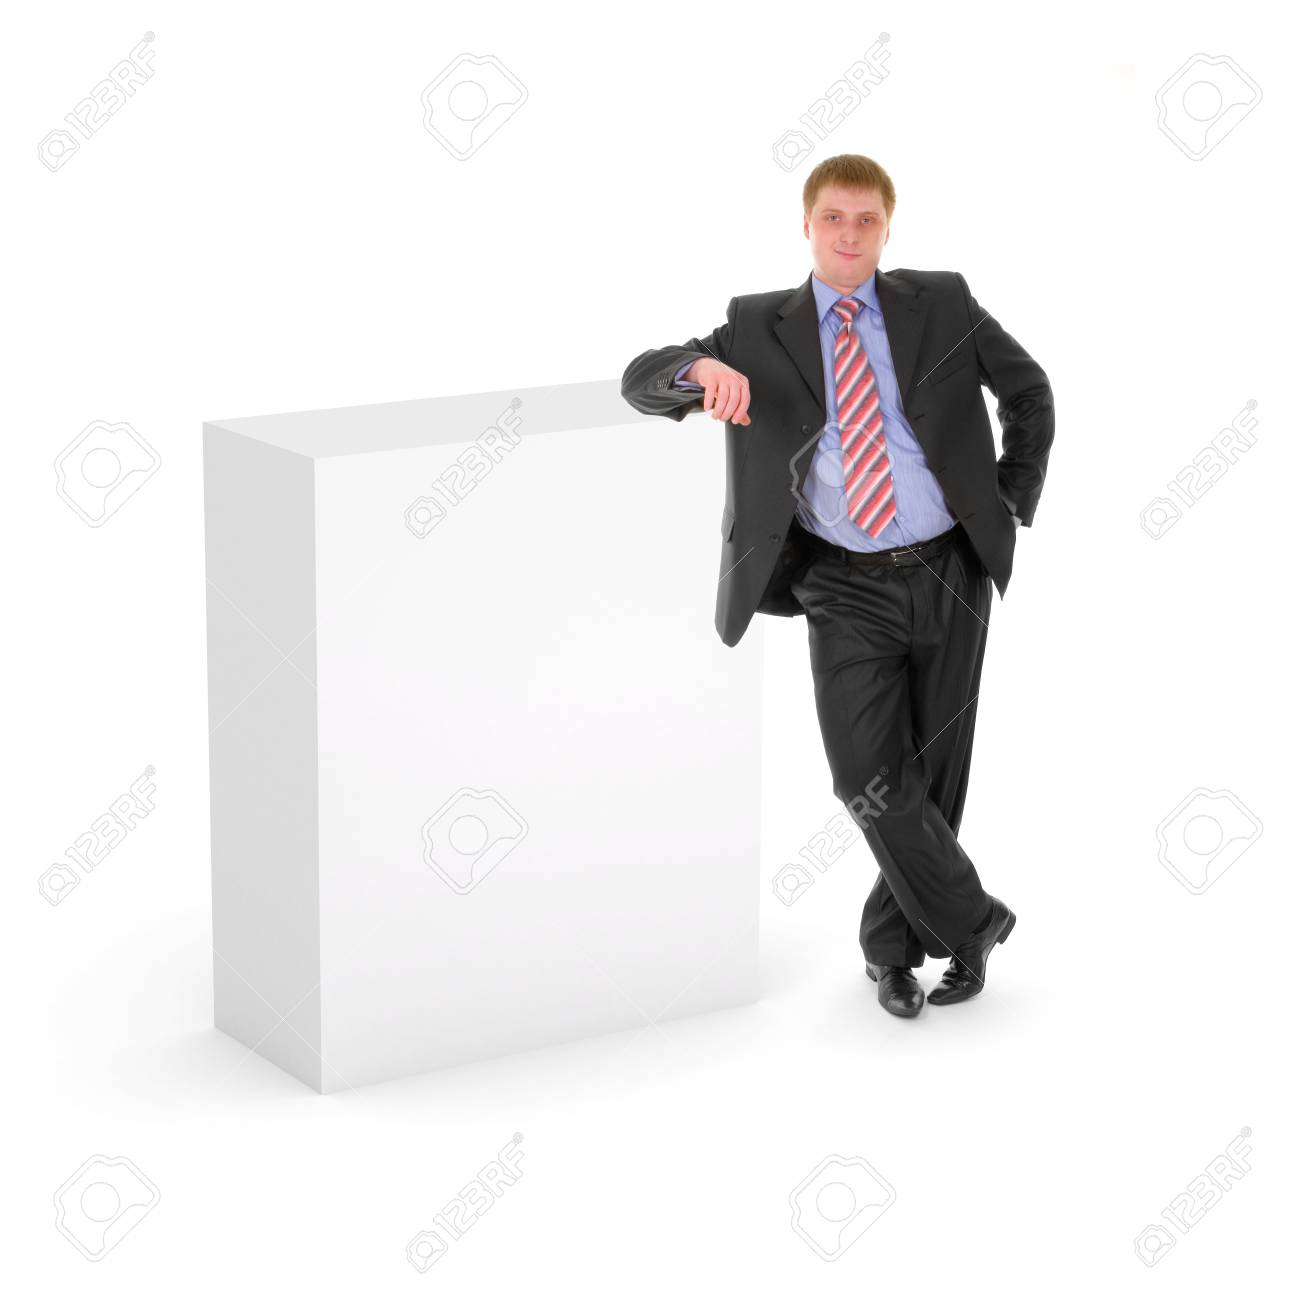 Blank box with business man Stock Photo - 4210413